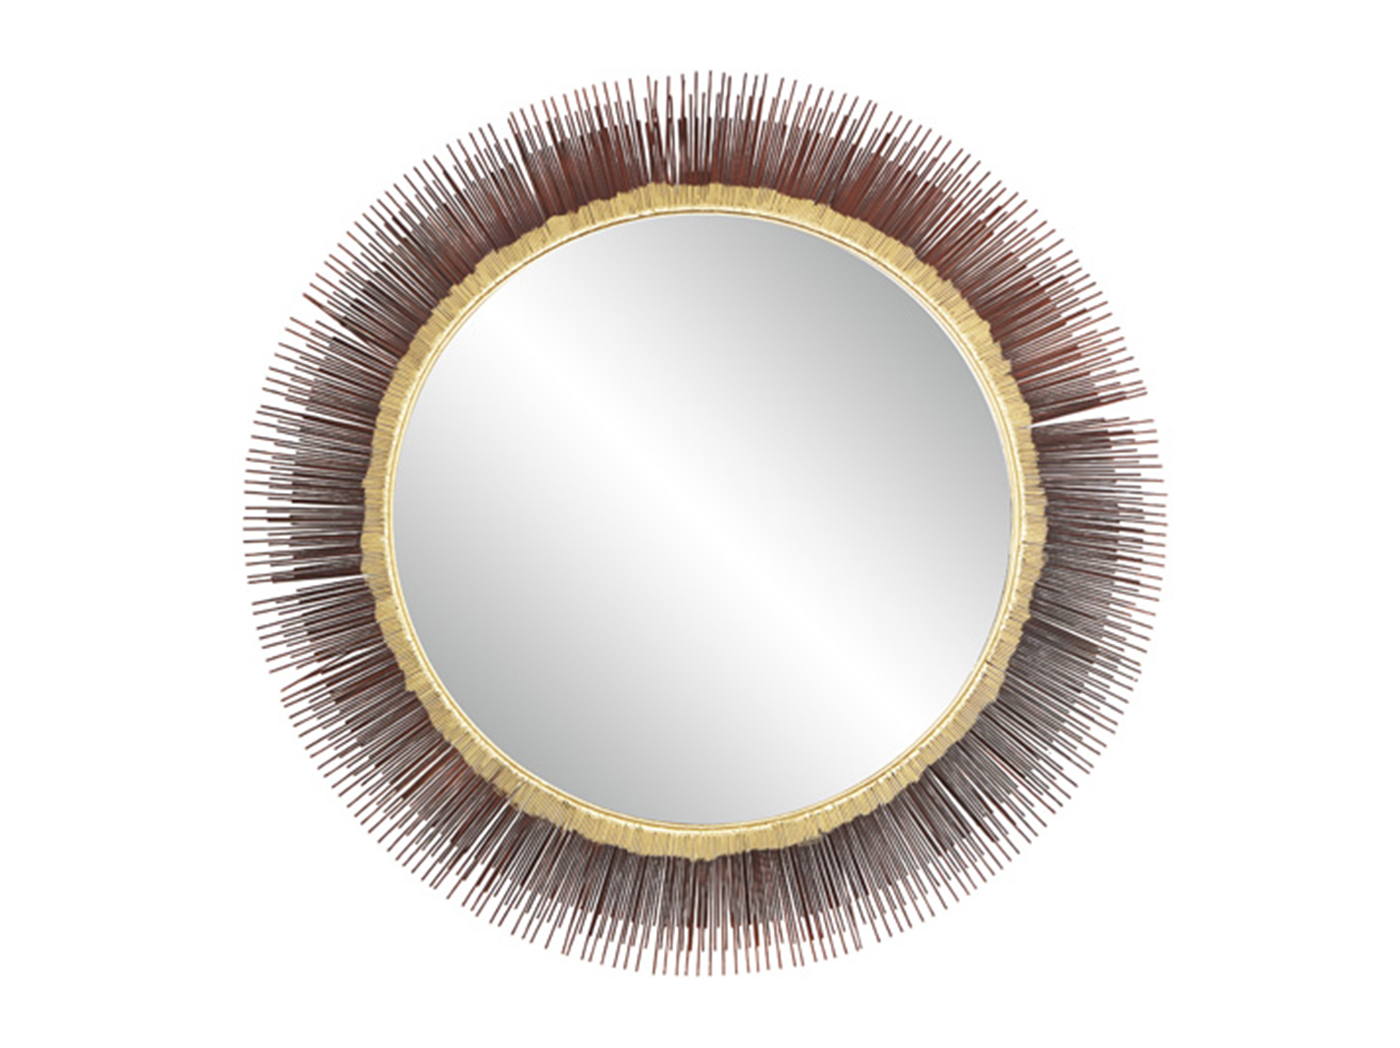 Sunburst Round Wall Mirror 36""